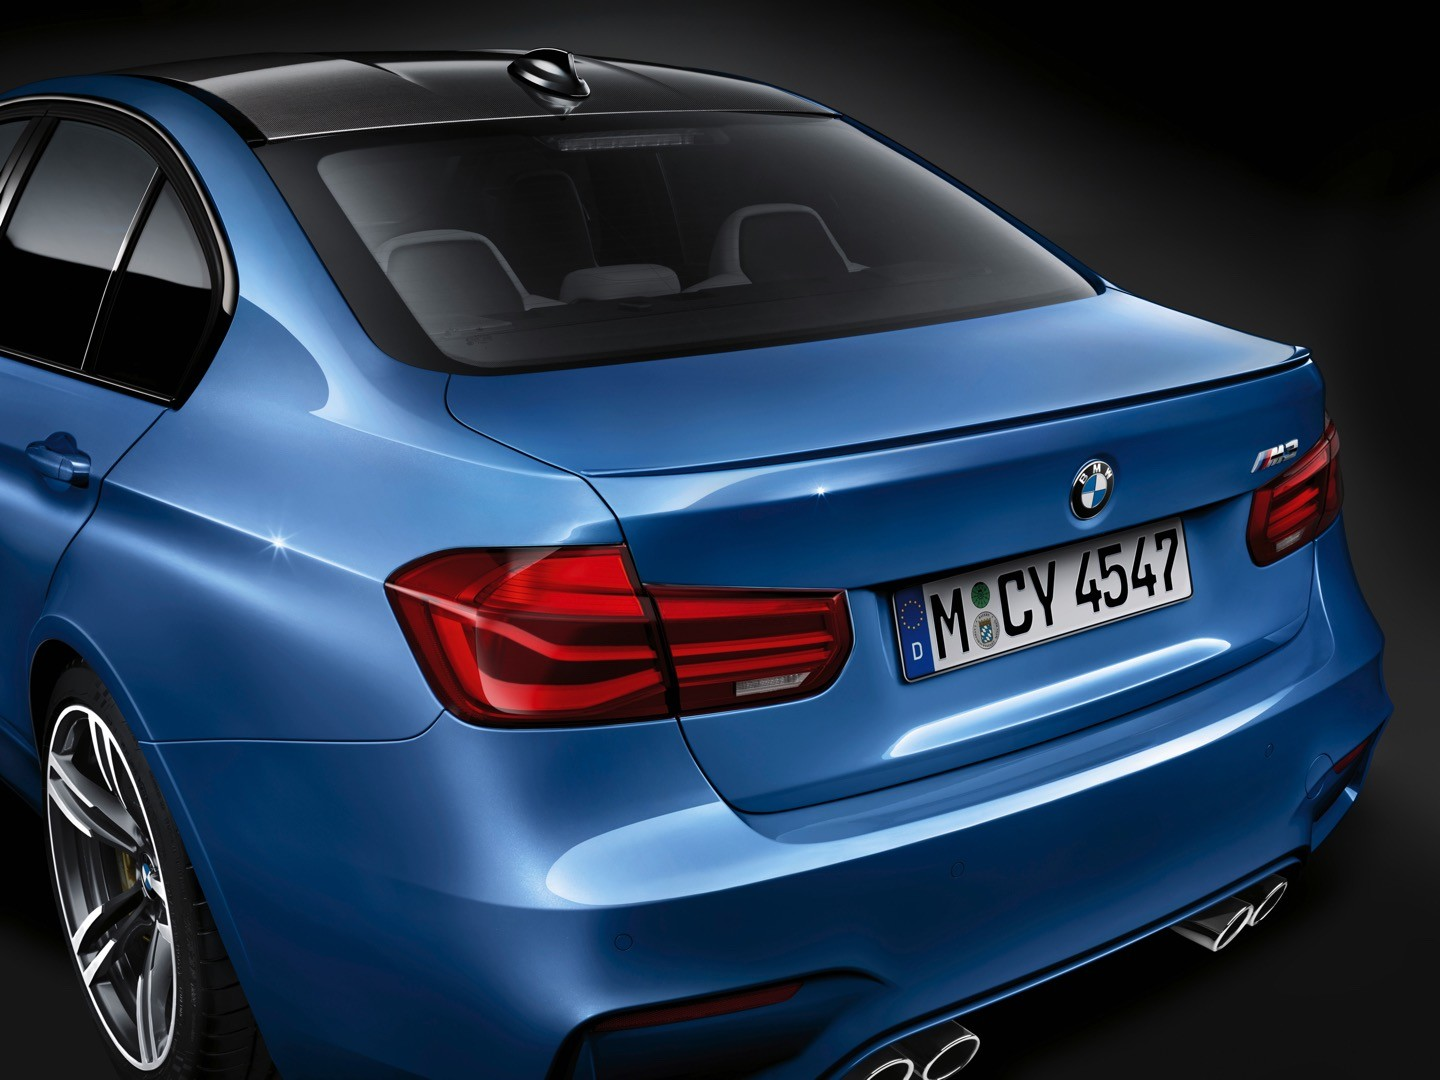 2016 Bmw M3 Facelift Has Two New Paint Colors Available As